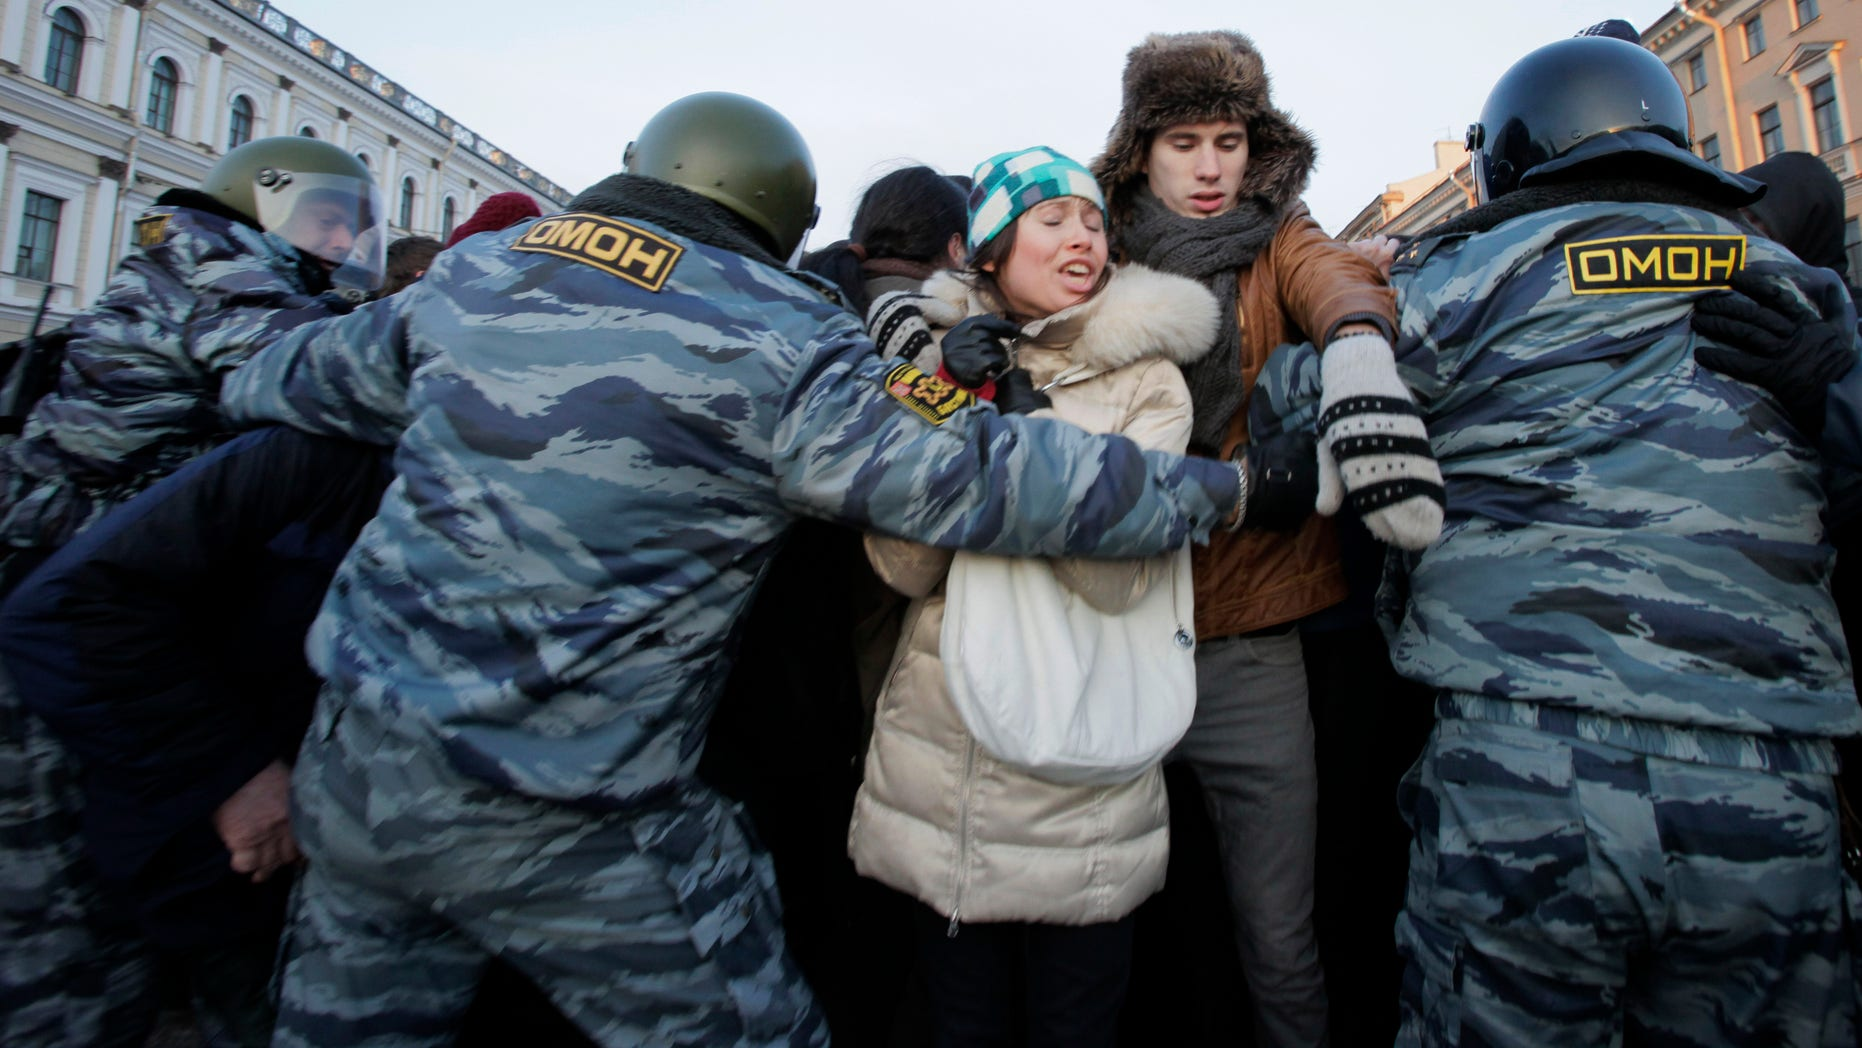 March 5: More than 100 protesters were arrested in St. Petersburg, where some 2,000 gathered for an unauthorized rally to protest Prime Minister Vladimir Putin's victory in the Russian presidential election.